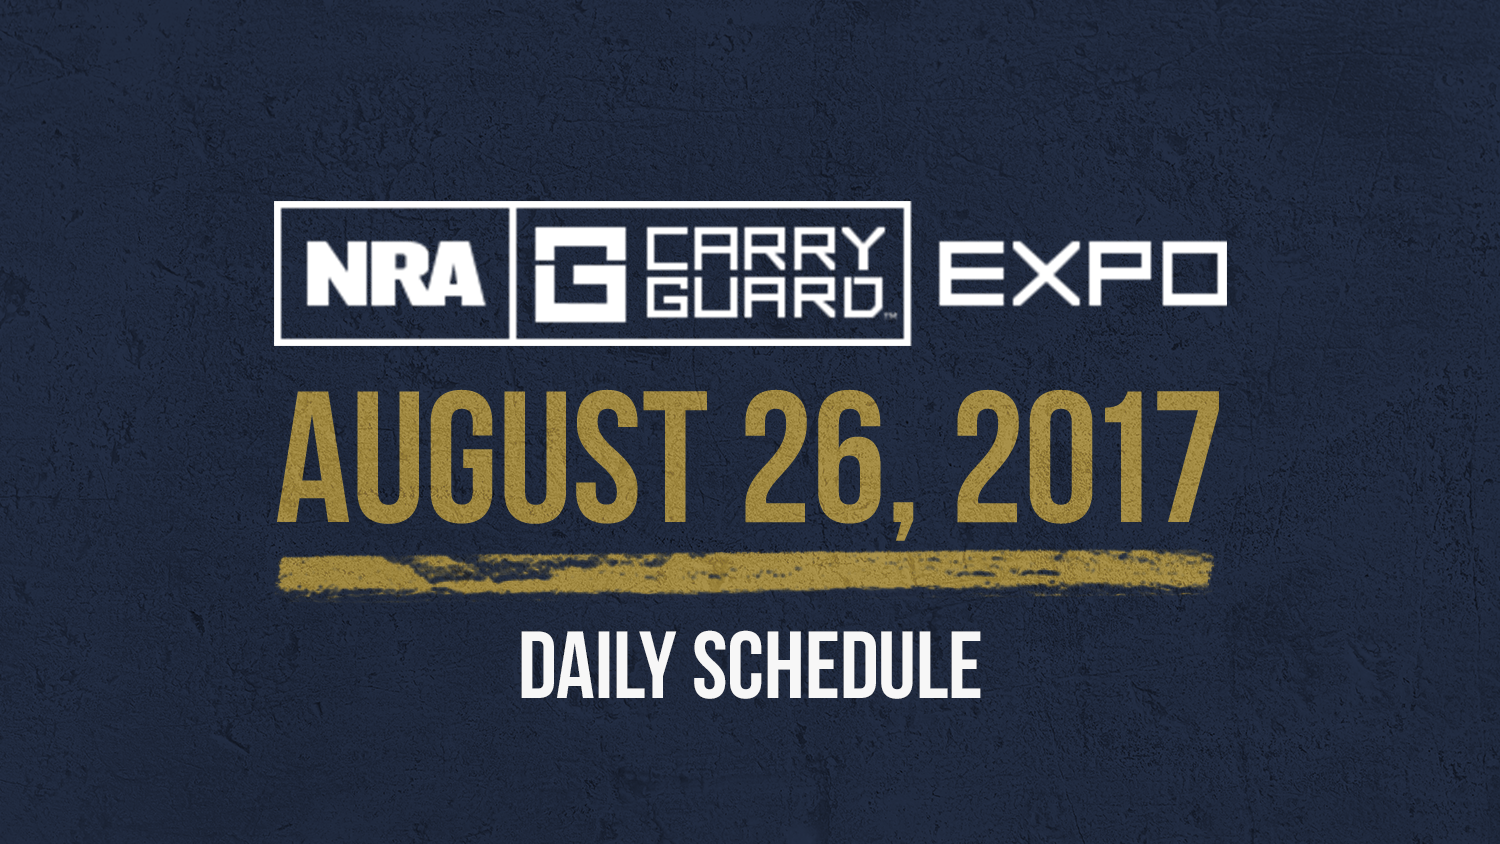 NRA Carry Guard Expo Events: Saturday, August 26th